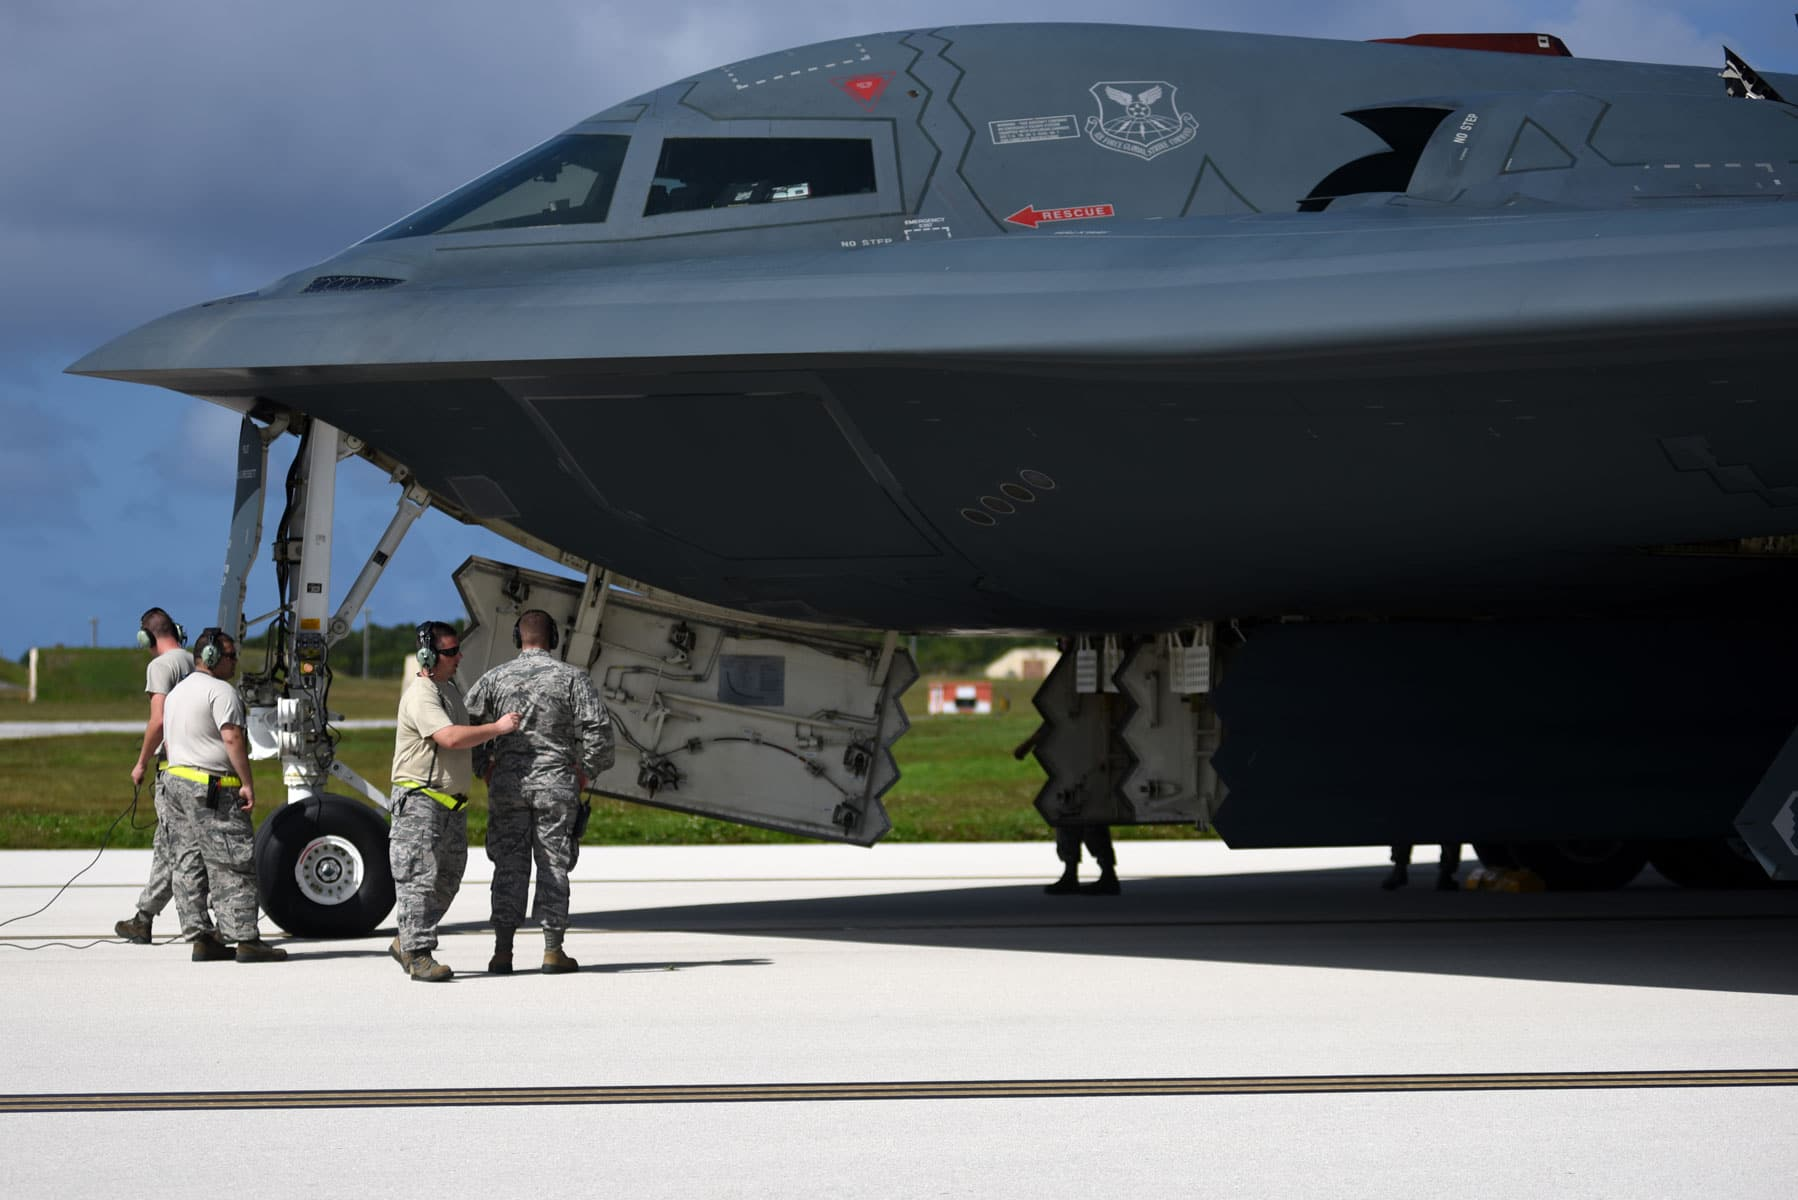 Approximately 200 Airmen and three B-2 Spirits from Whiteman Air Force Base (AFB), Missouri, deployed to Andersen AFB in support of U.S. Pacific Command's (PACOM) Bomber Assurance and Deterrence mission.